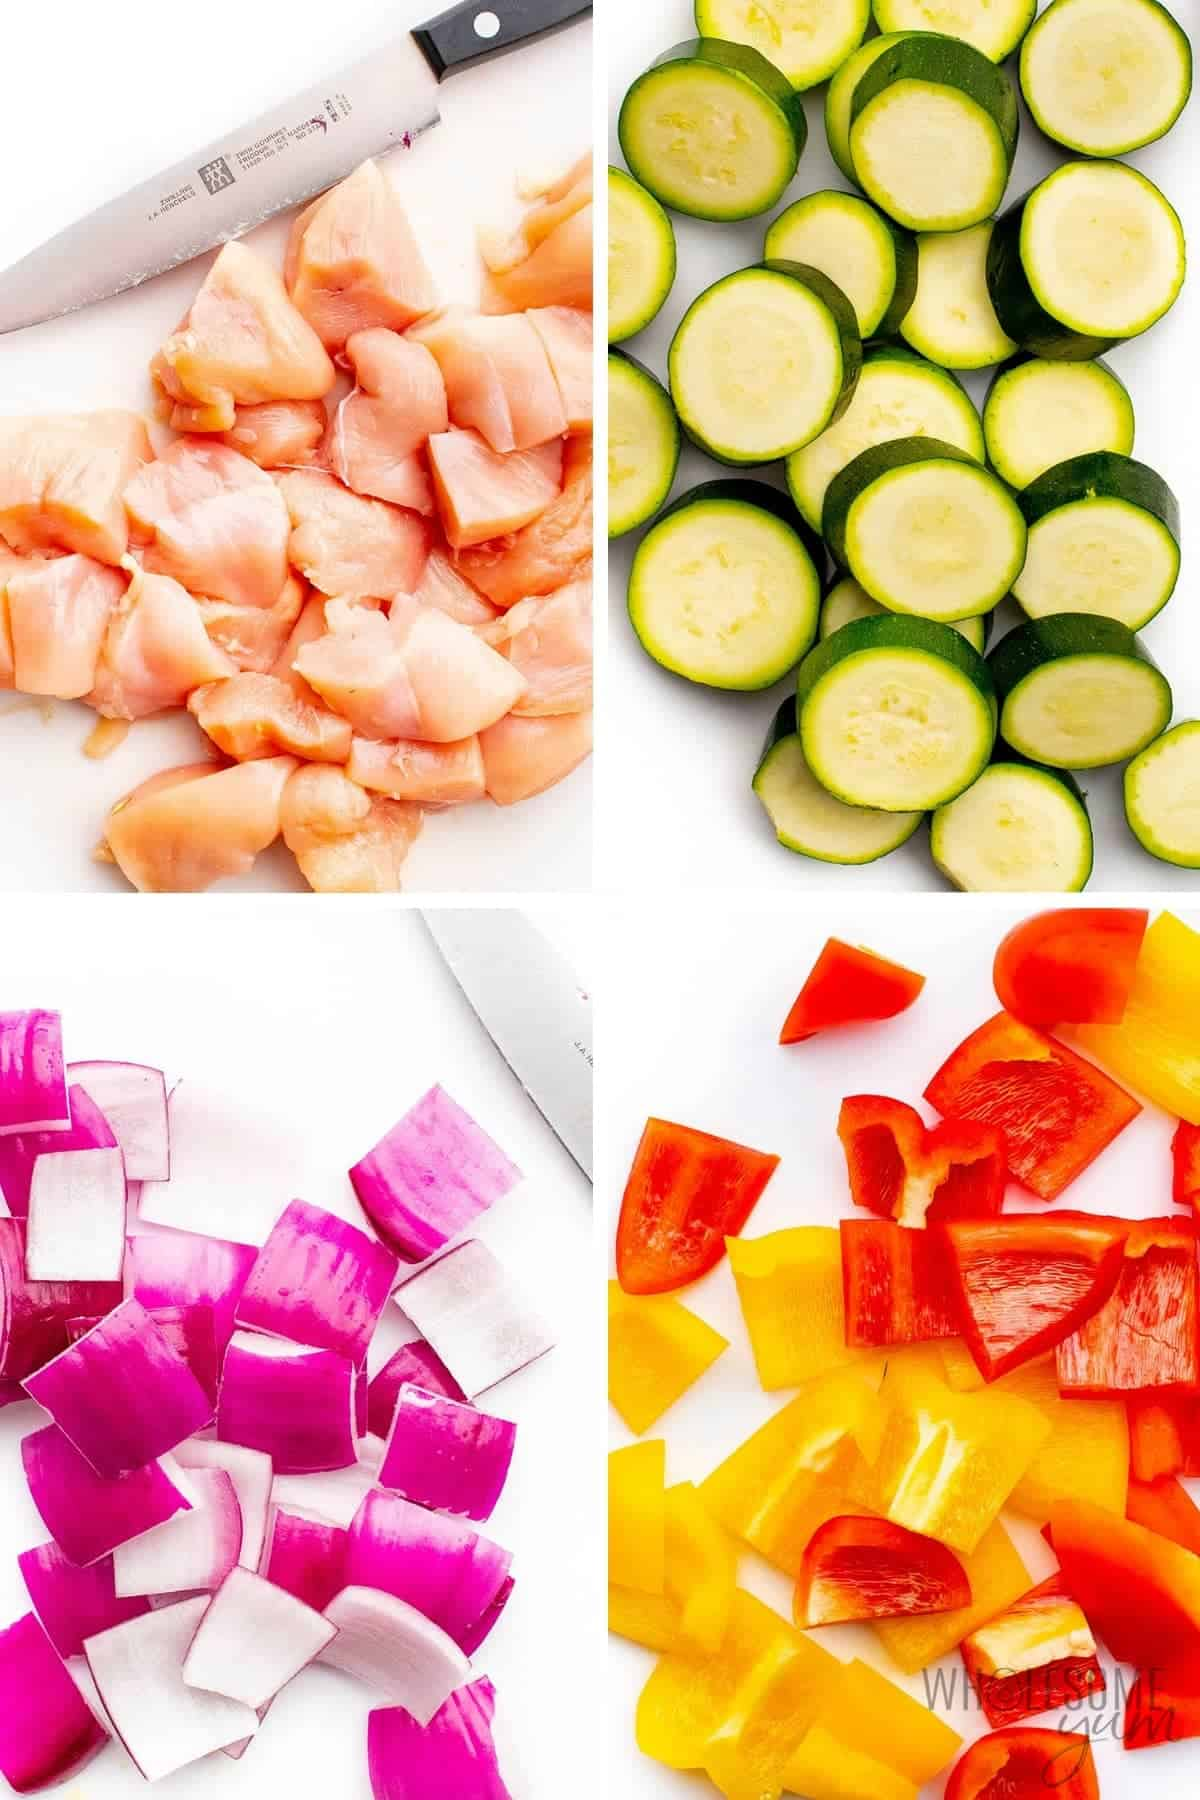 Chopped ingredients for chicken and vegetable kabobs